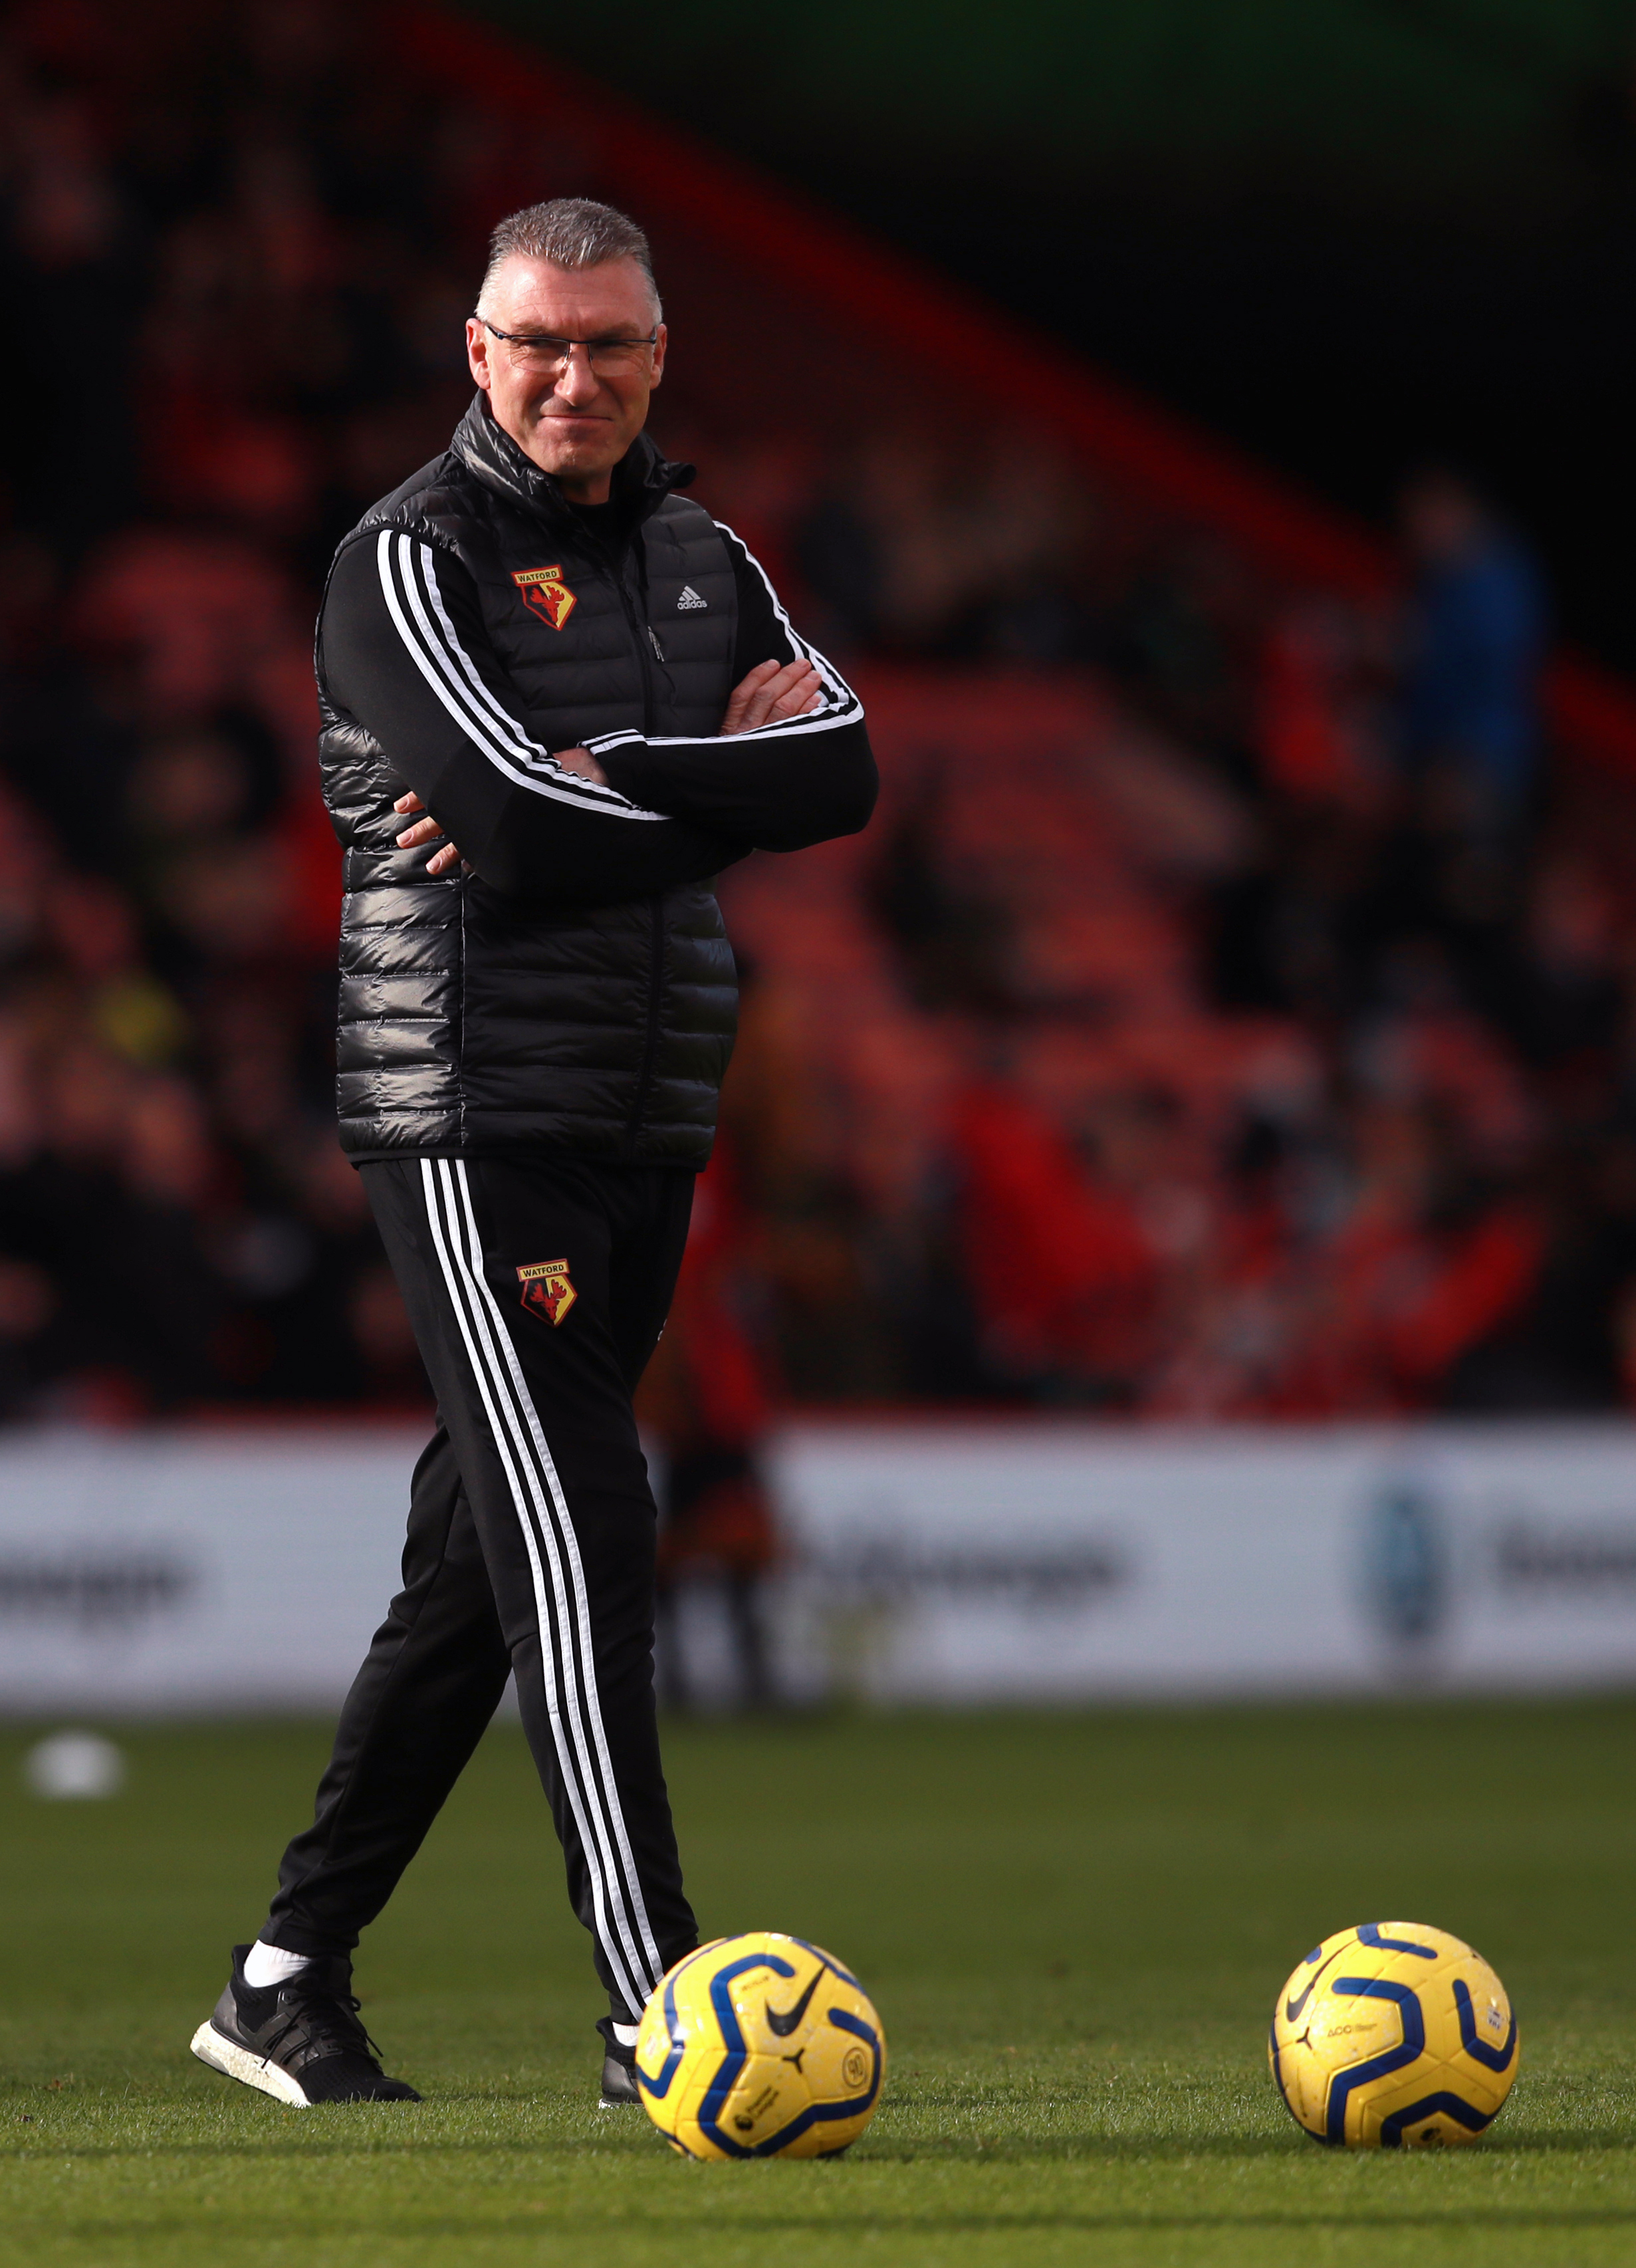 Watford manager Nigel Pearson during the Premier League match at the Vitality Stadium, Bournemouth.